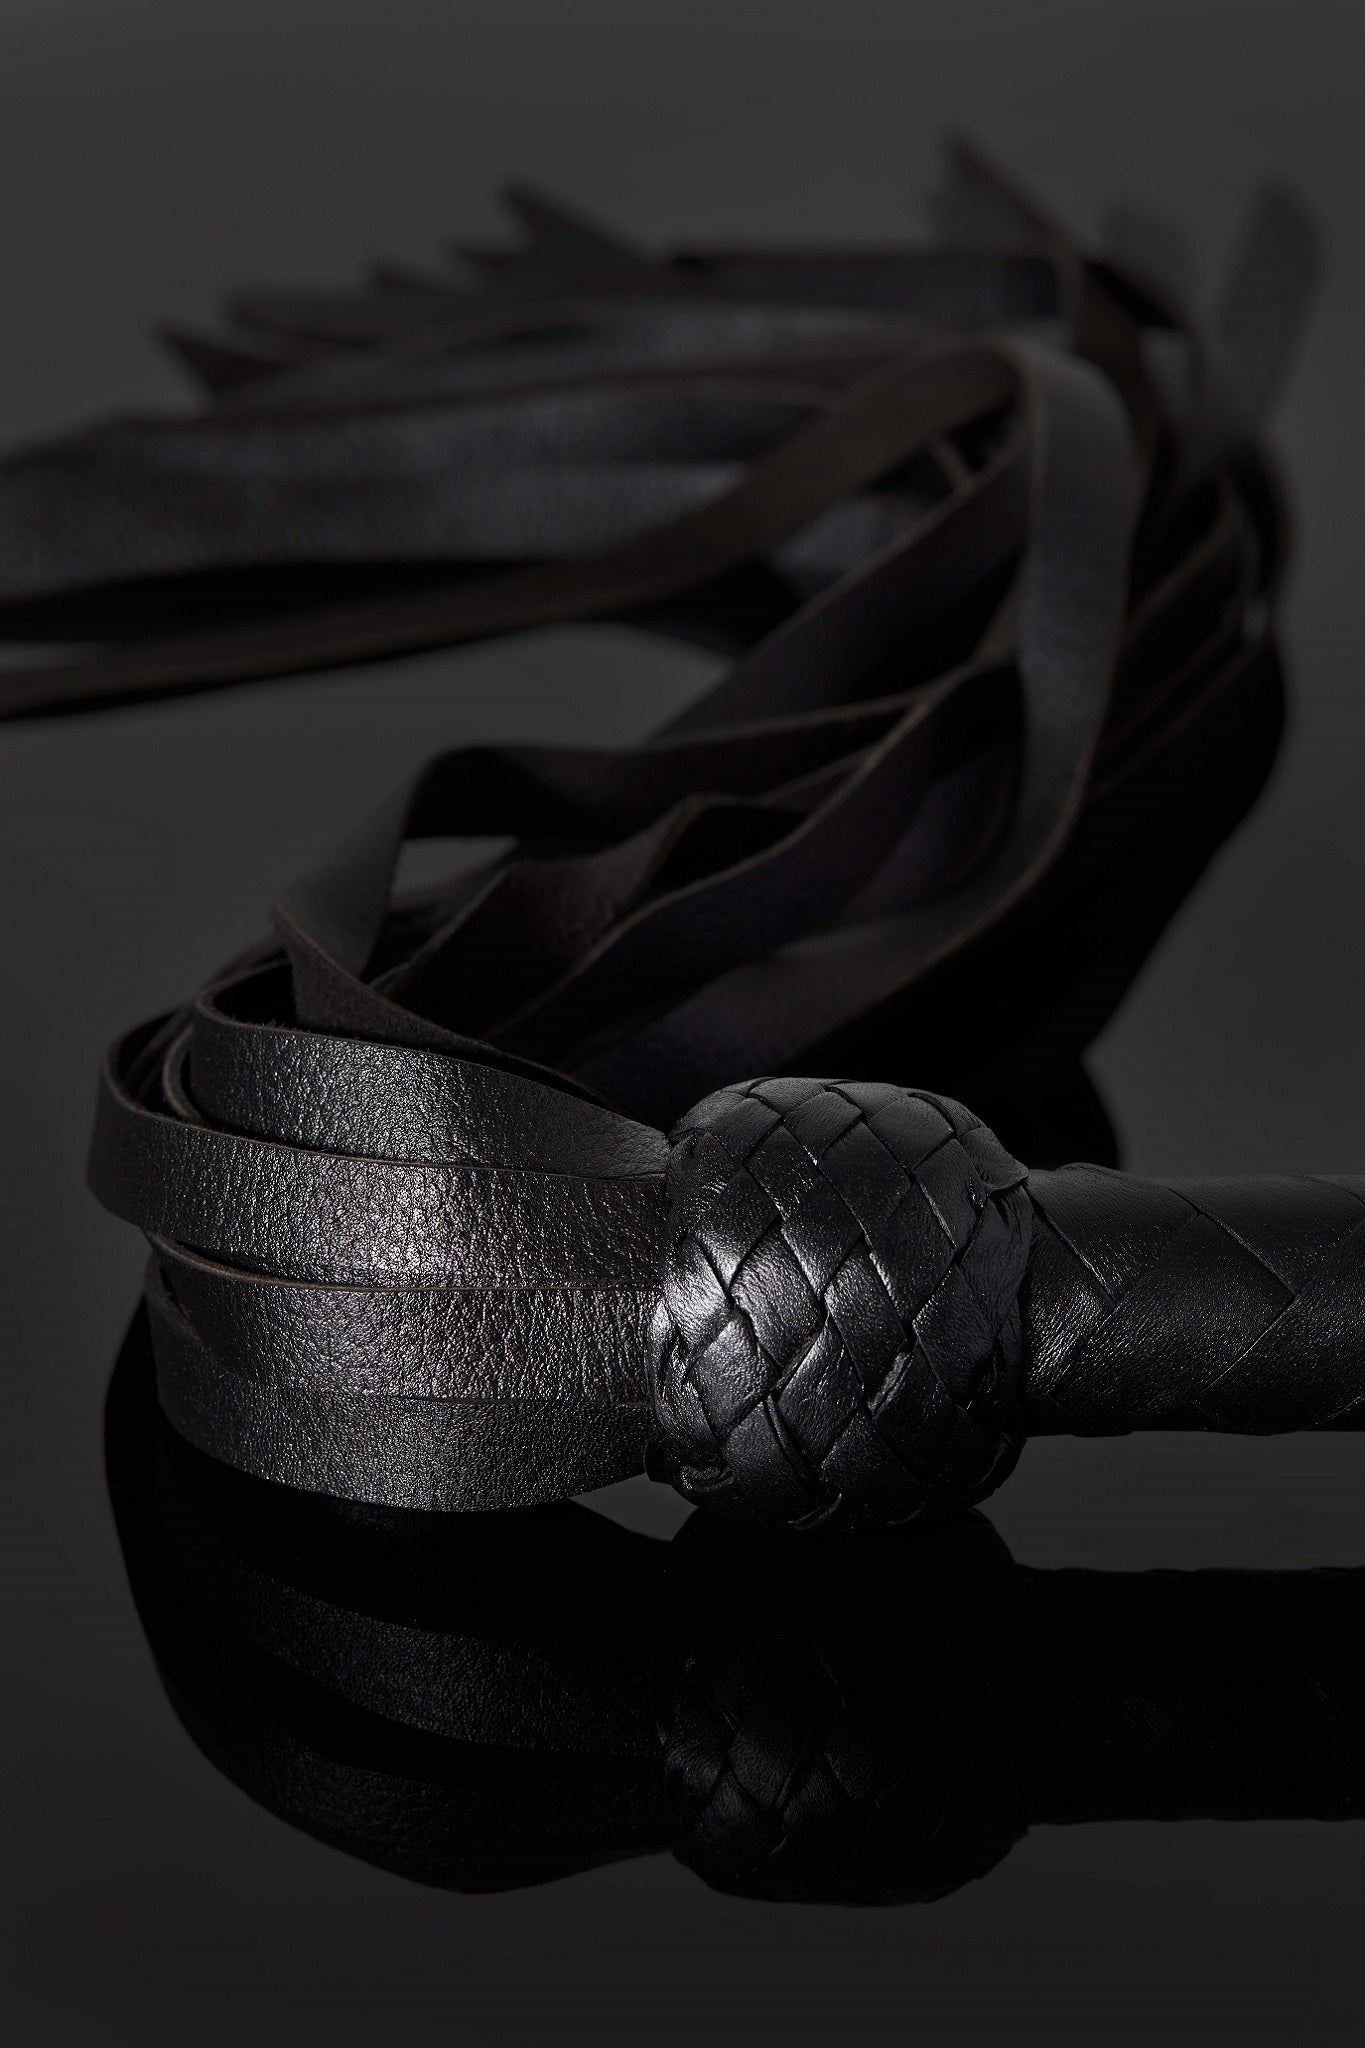 House of SXN Servage Classic Bondage Leather Flogger 4